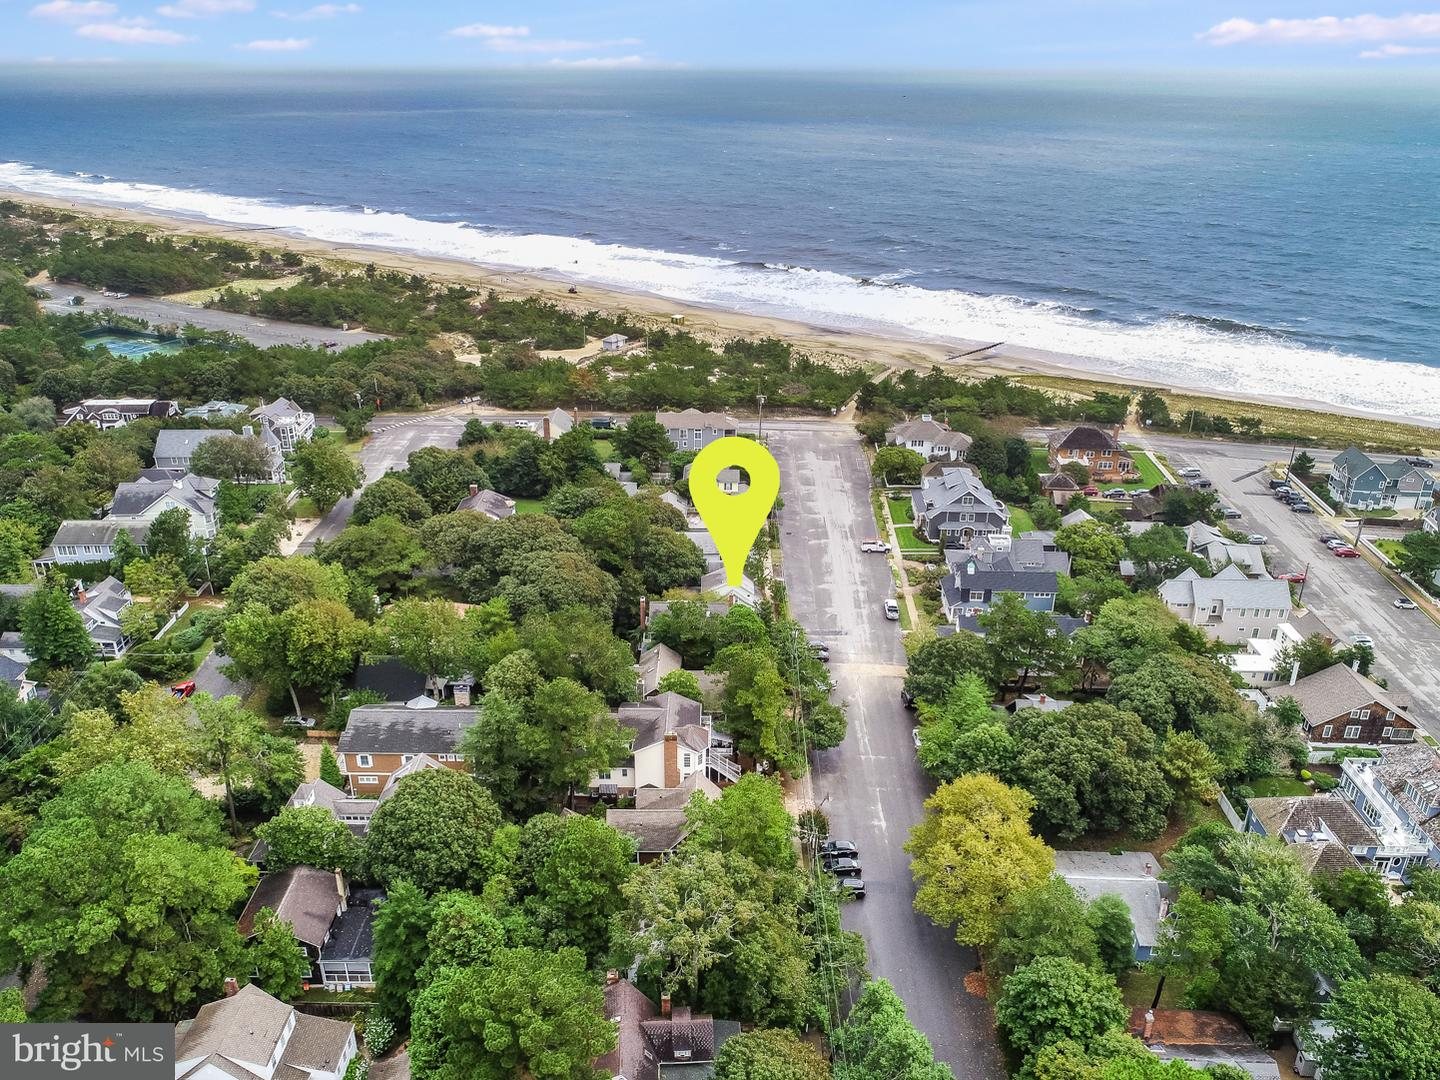 1002499304-300577342375-2018-11-27-14-22-07 North Rehoboth Real Estate - Rehoboth Beach Real Estate - Bryce Lingo and Shaun Tull REALTORS, Rehoboth Beach, Delaware